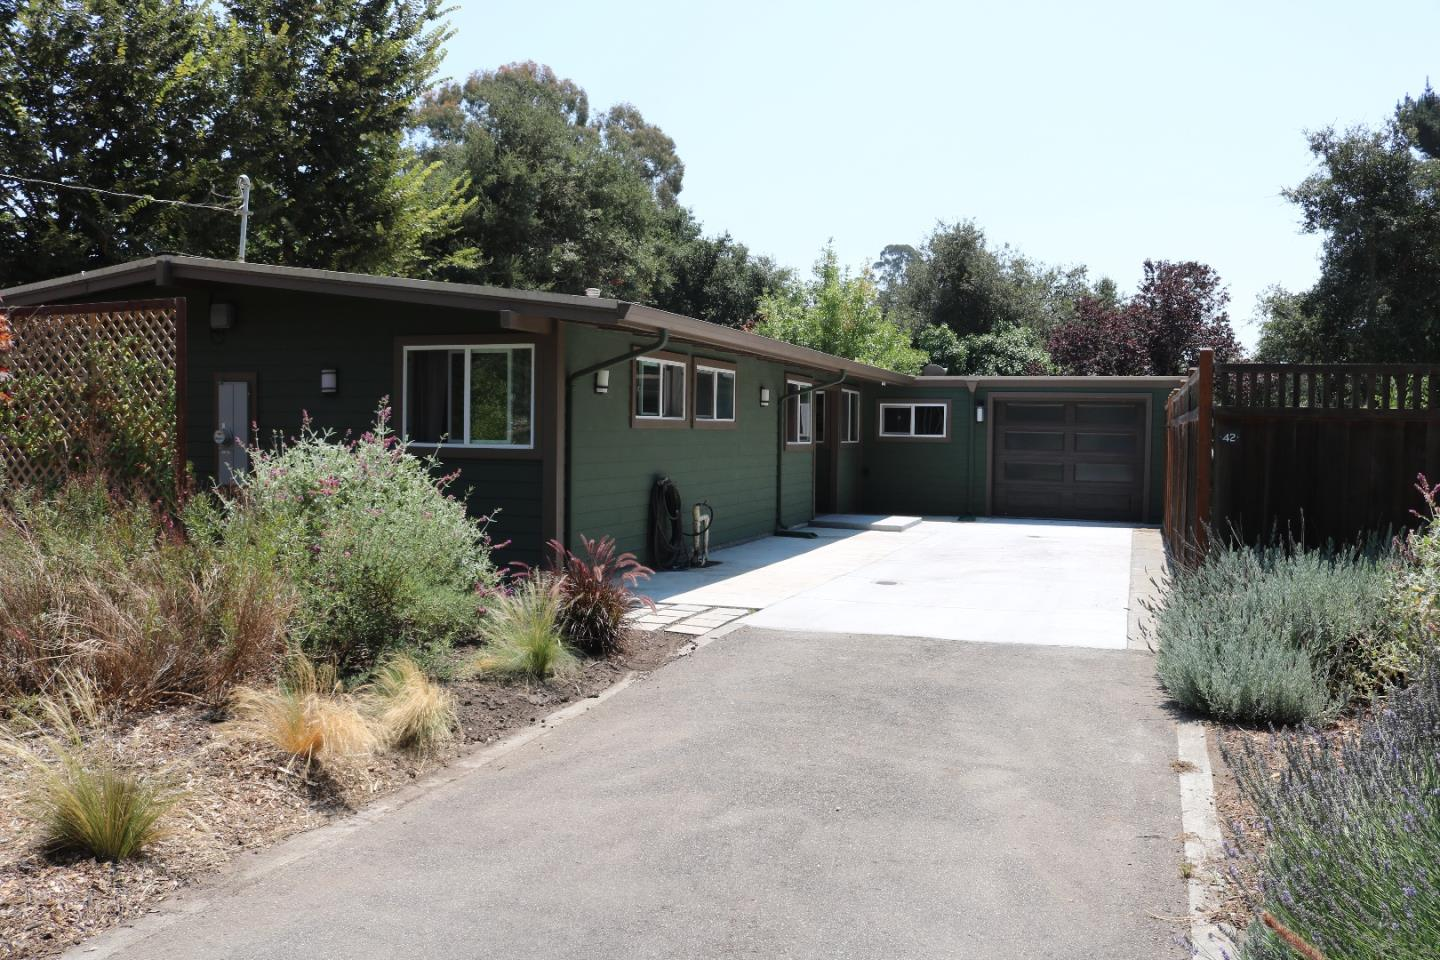 Single Family Home for Sale at 42 Browns Valley Road Corralitos, California 95076 United States